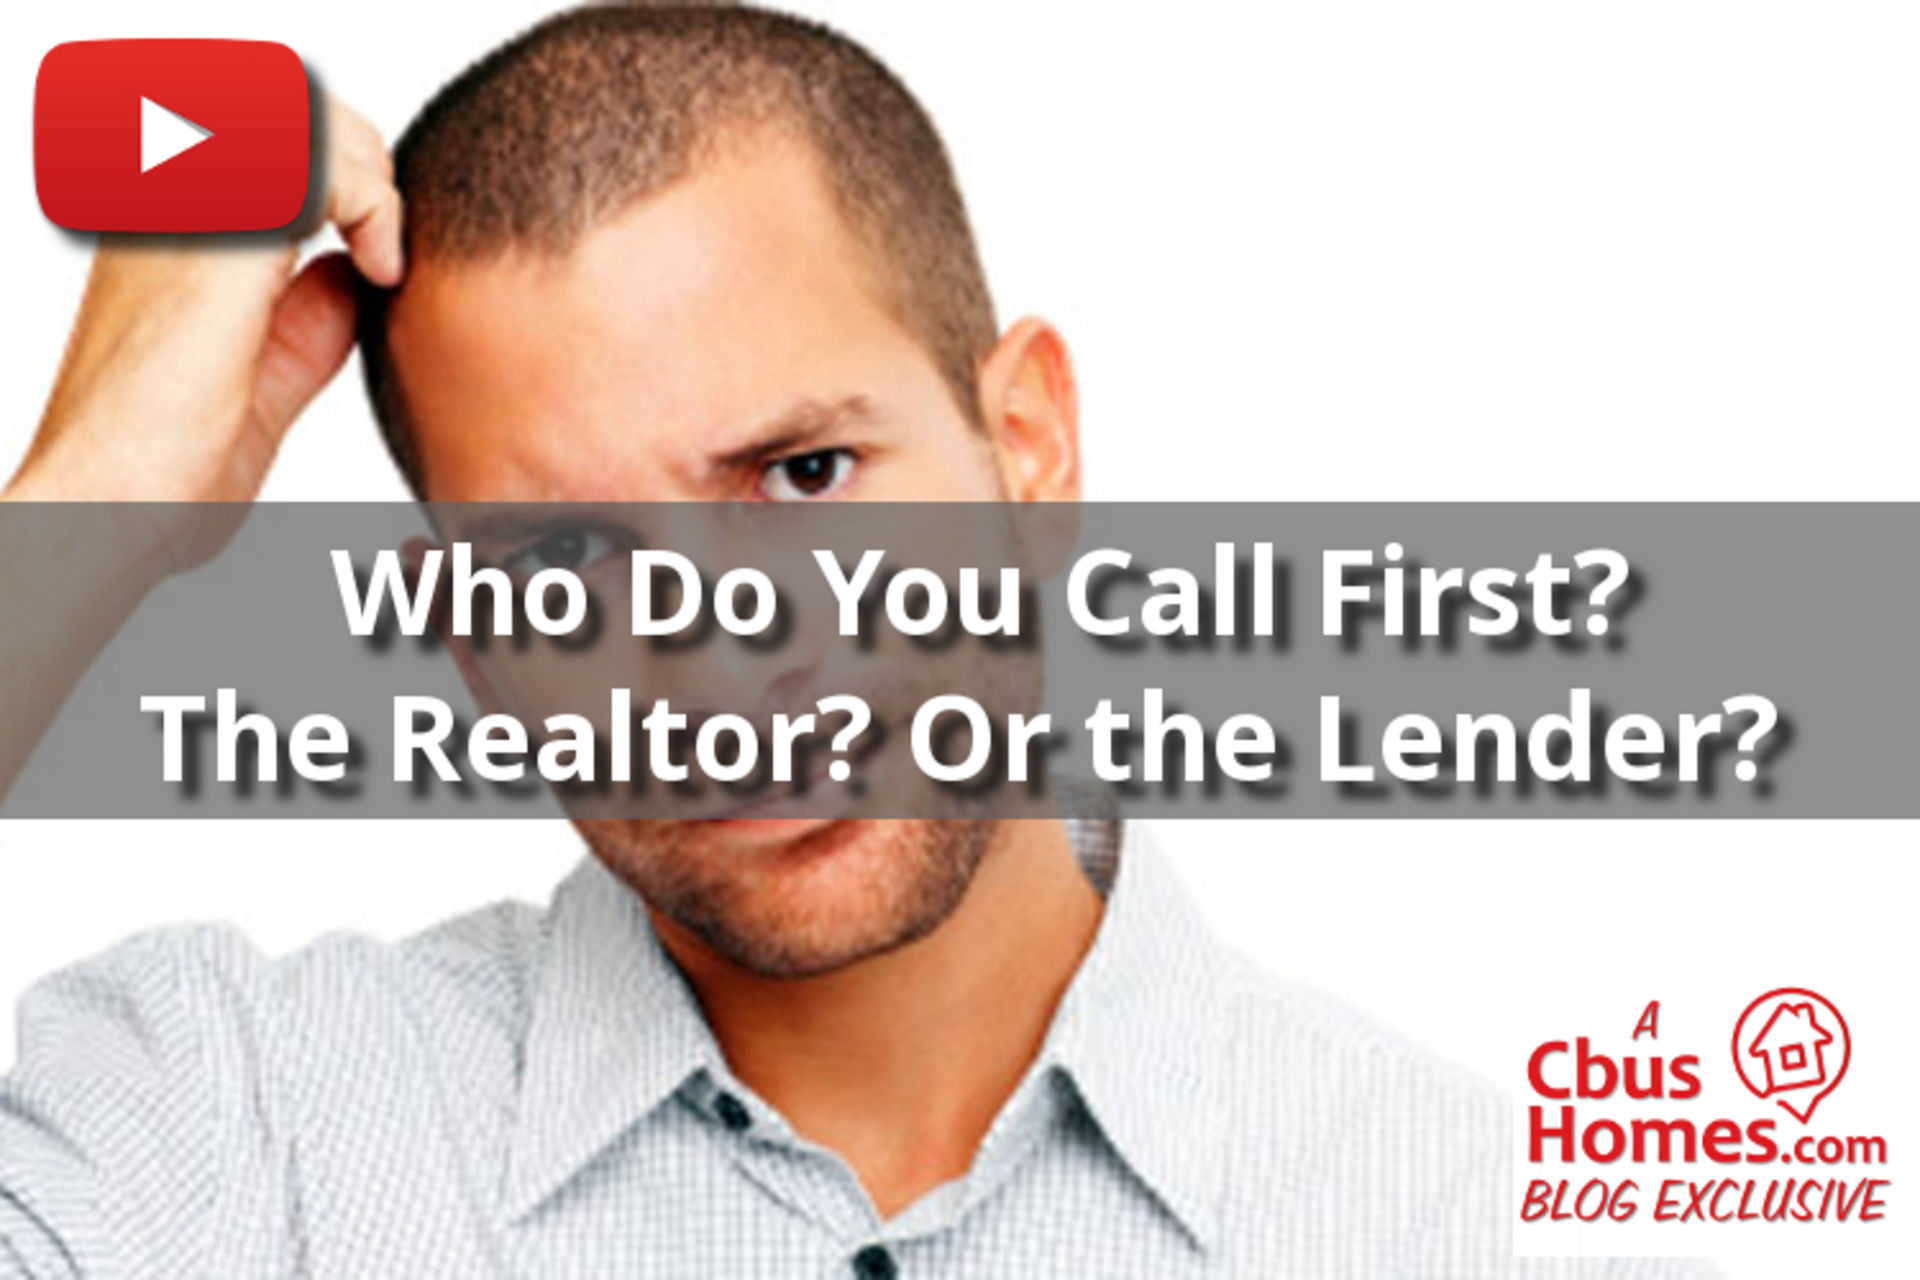 VIDEO: What Comes First? The Realtor? Or the Lender?